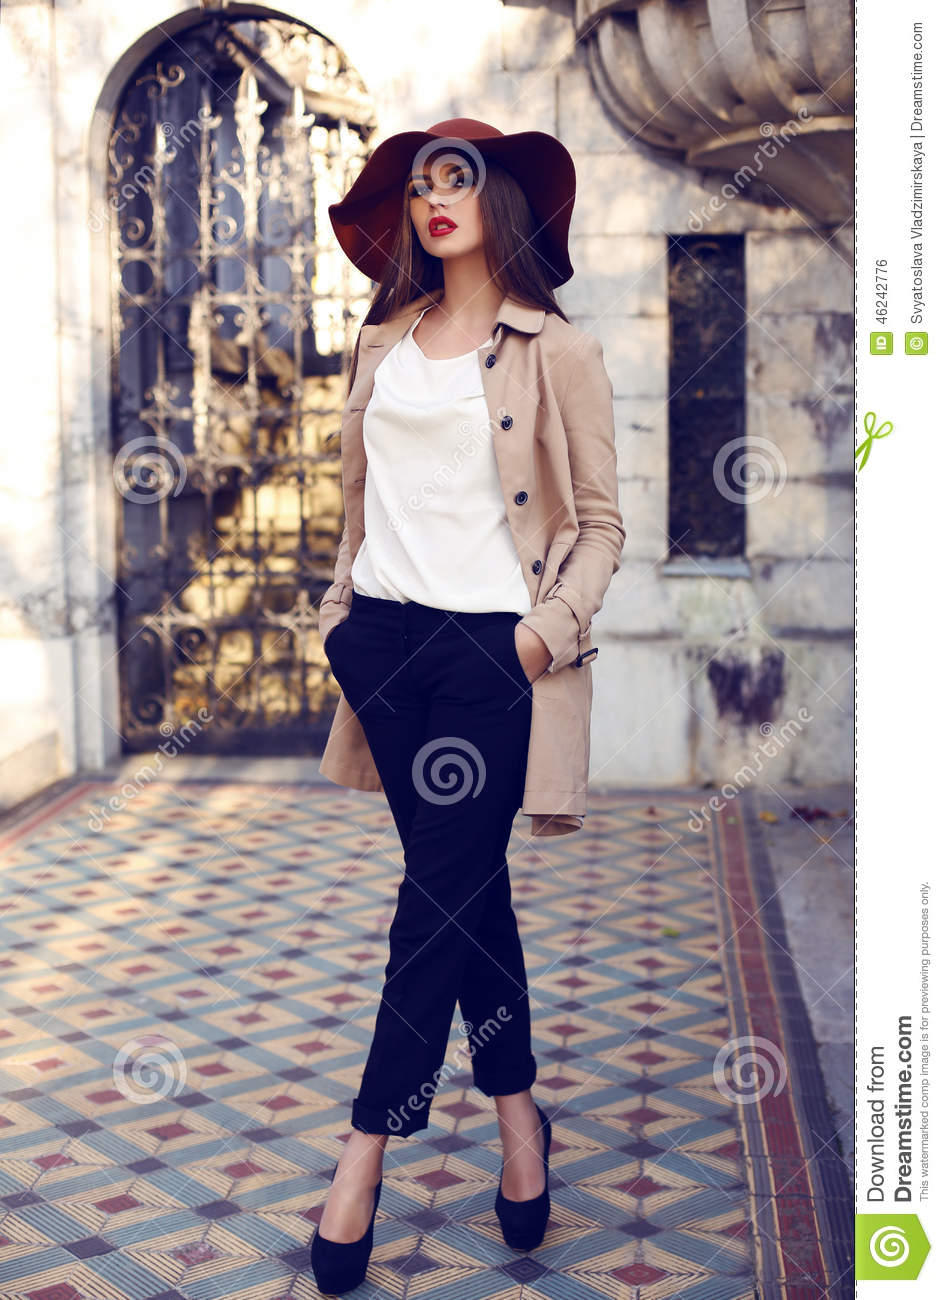 Beautiful ladylike woman in elegant fashion clothes posing in palace